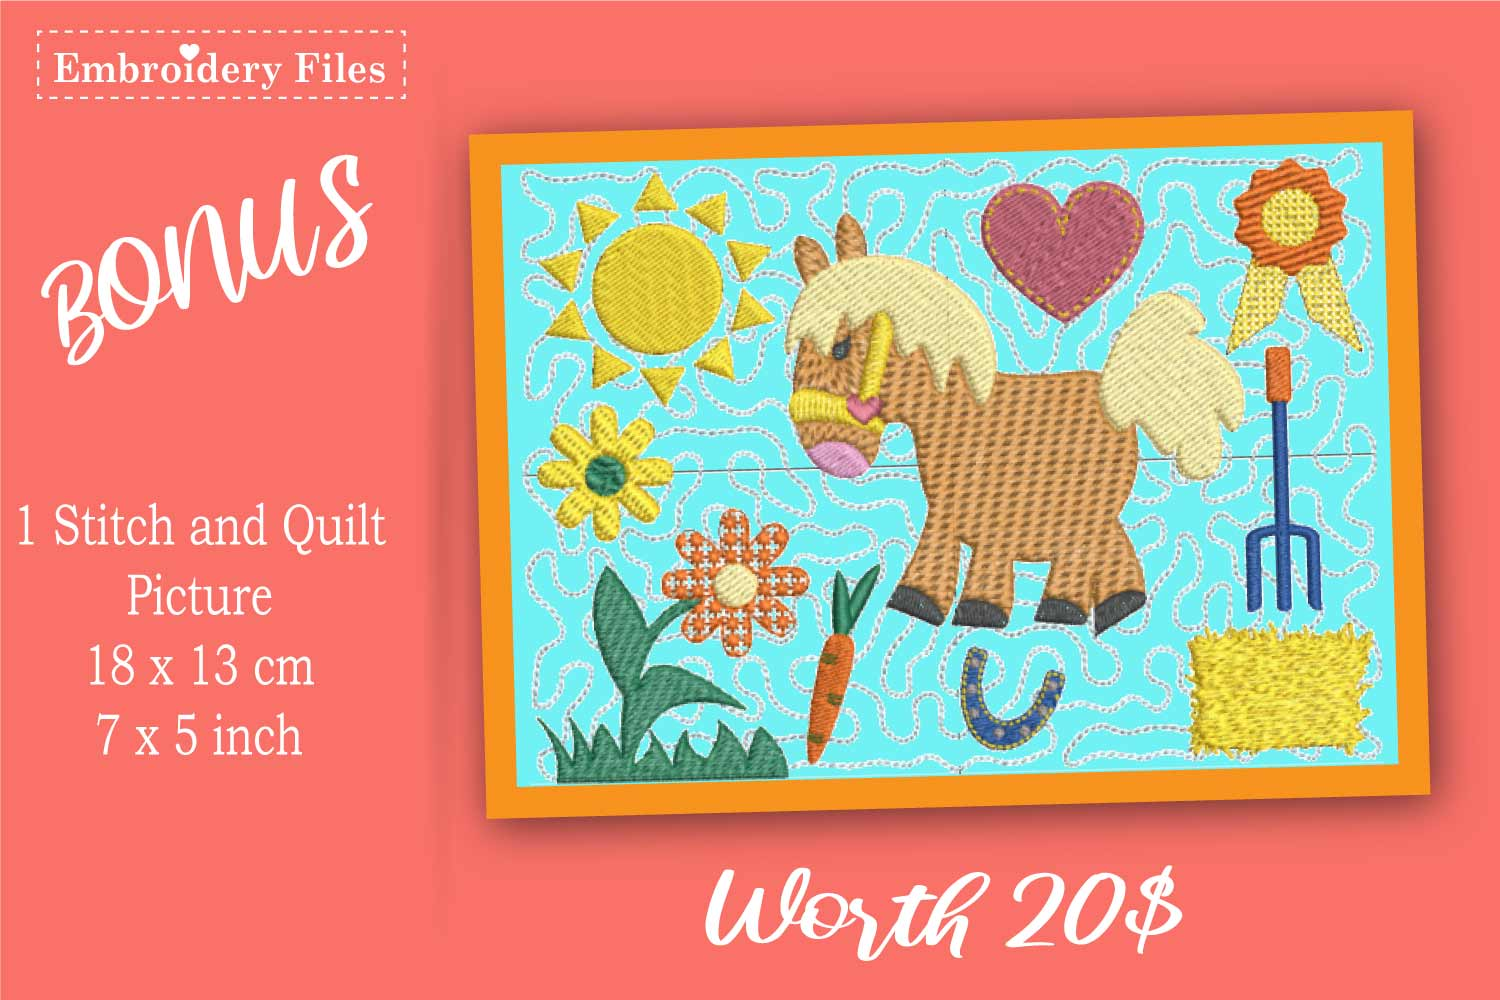 My lovely Pony - Embroidery Files - 10 Motives example image 2